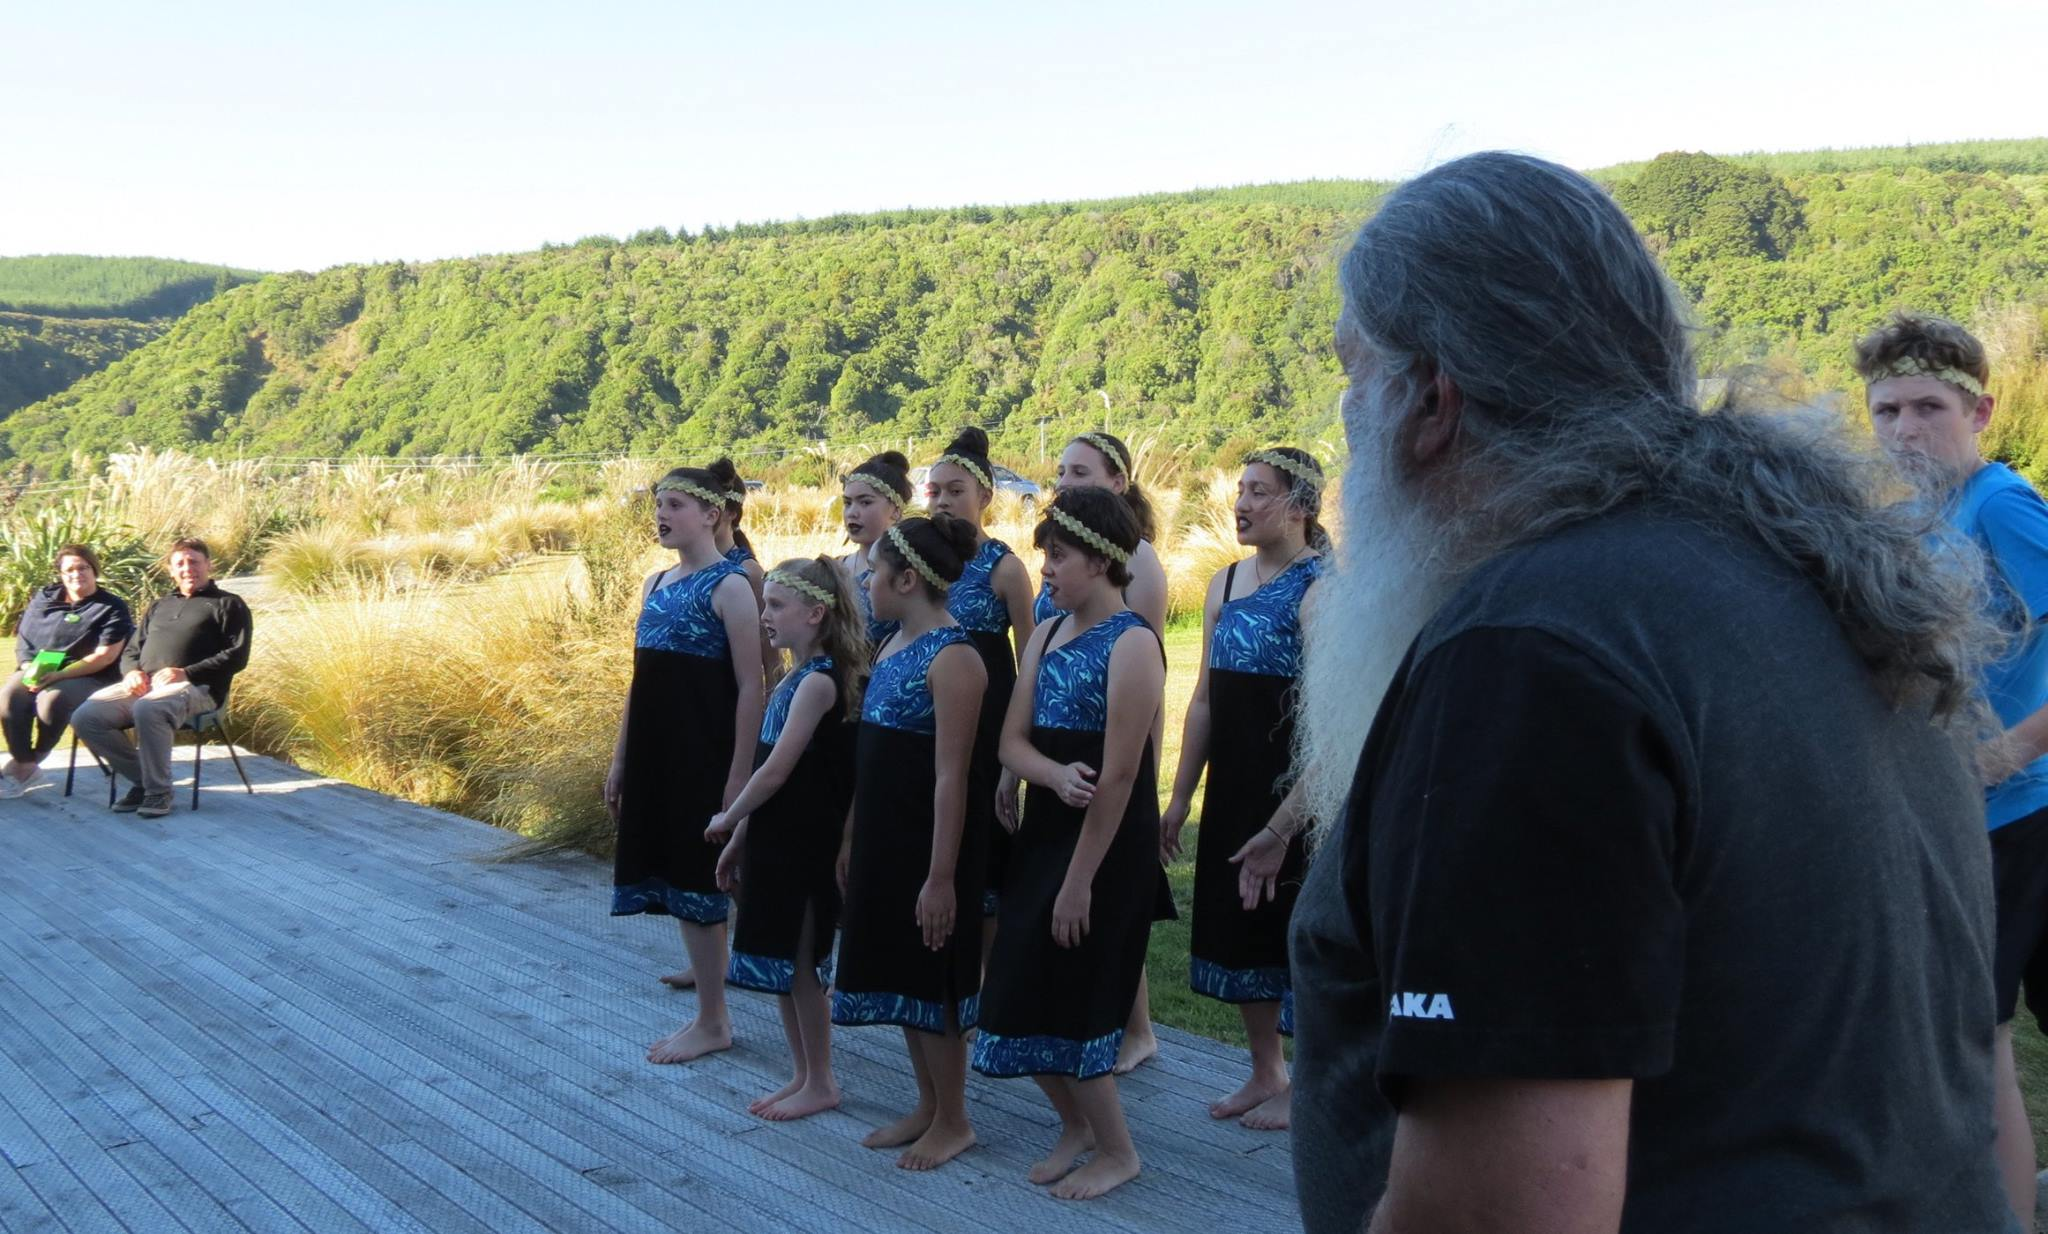 Our people our places. A stunning performance from our Ōraka Aparima tamariki, ably supported by Stewart Bull facilitating a welcome. Aroha ki te tangata. Ki Uta Ki Tai.